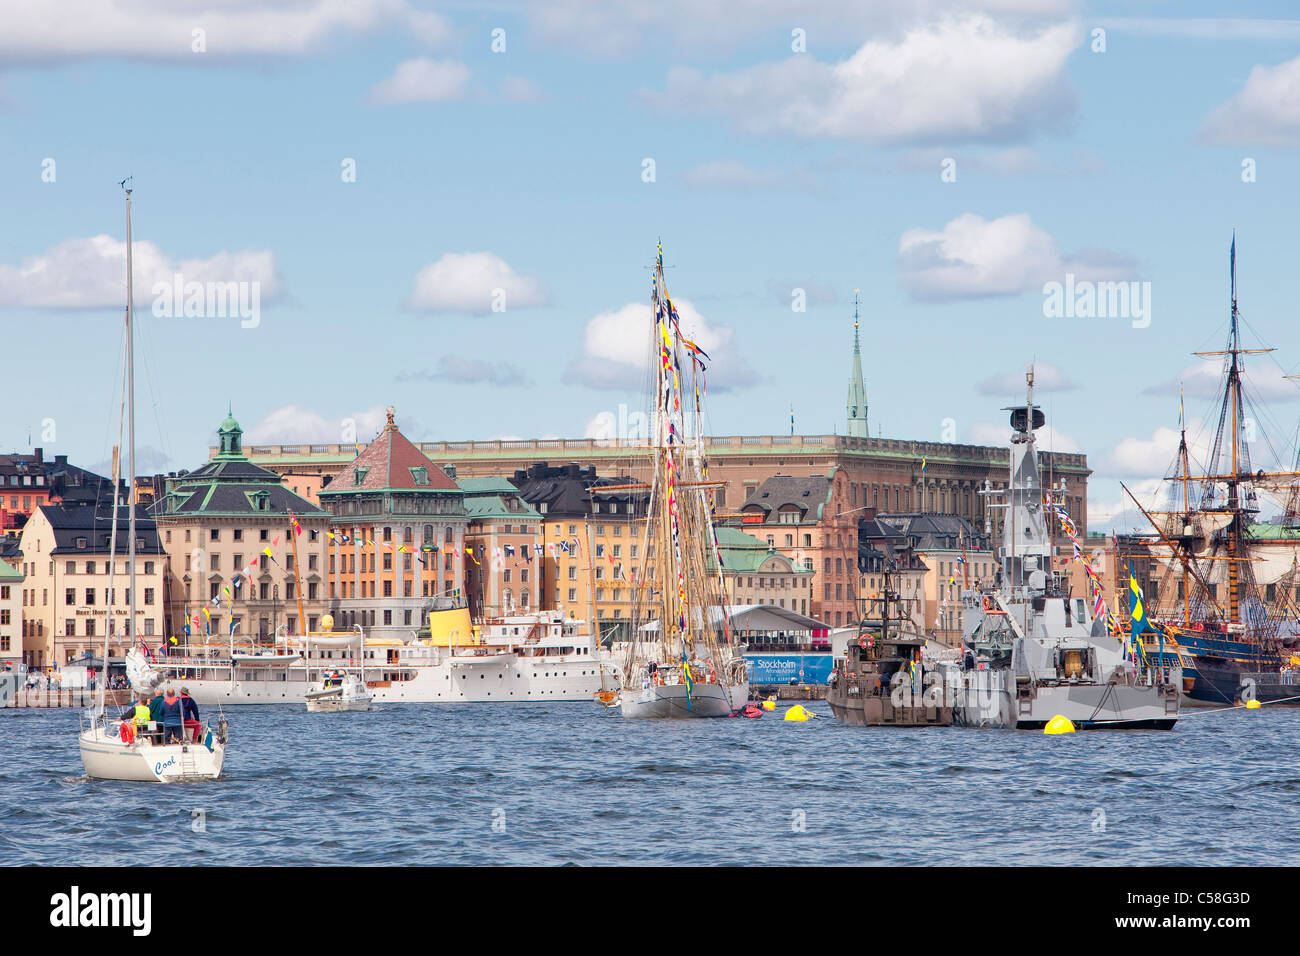 Boat, Boats, Cities, City, Cityscape, Cityscapes, Colour, Colour, Day, Daytime, Europe, Exterior, Gamla Stan, Horizontal, - Stock Image